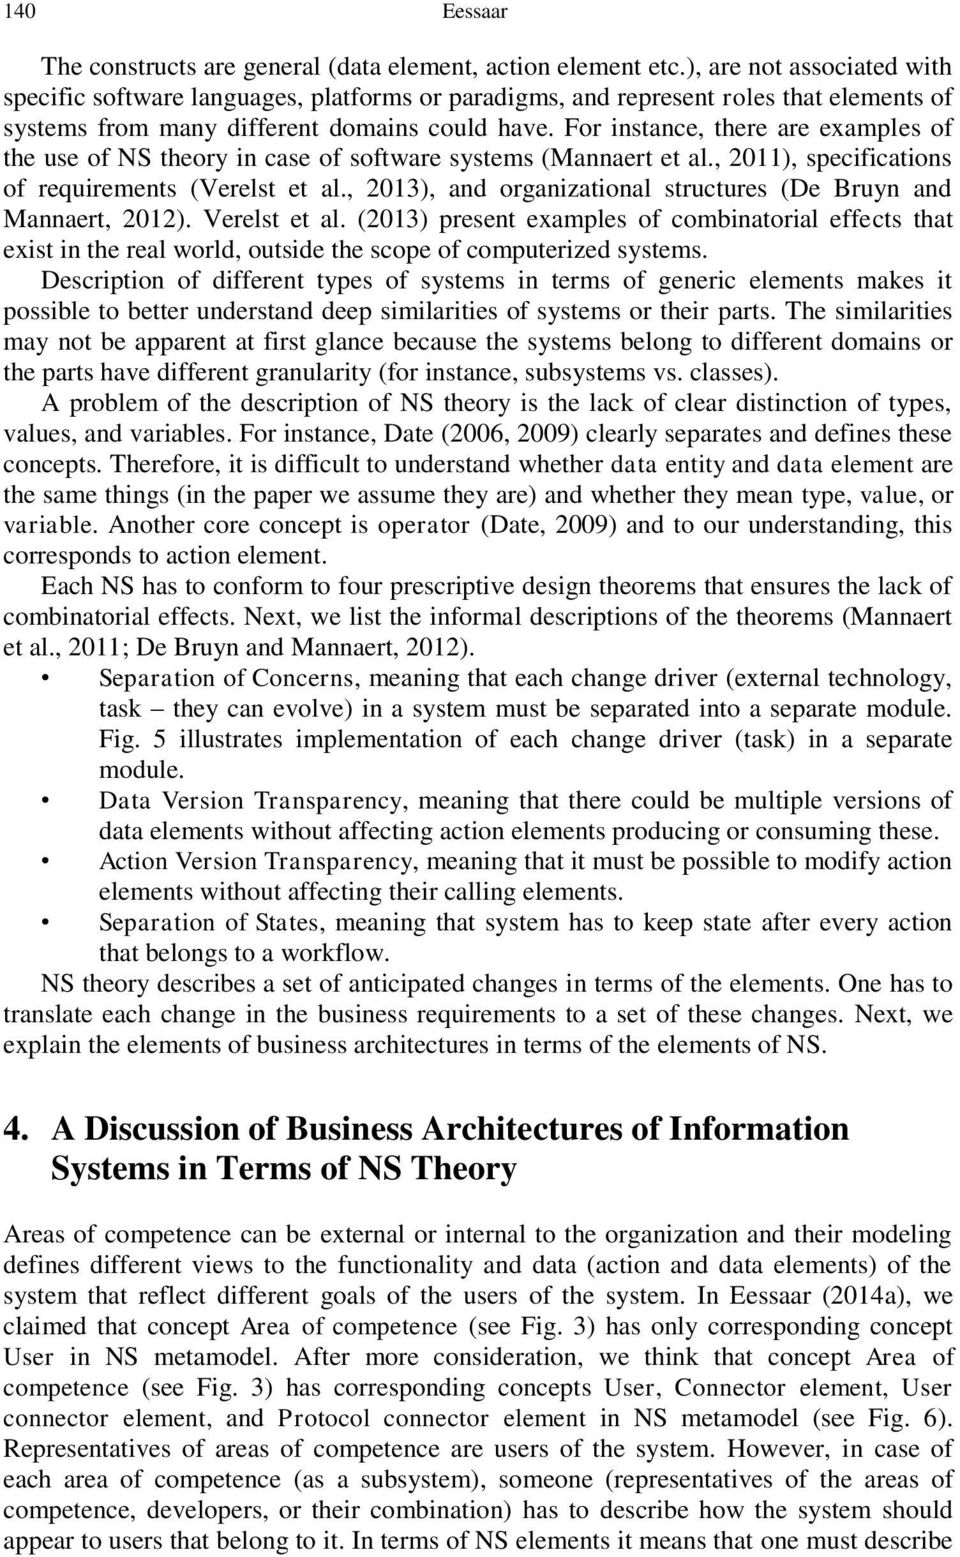 For instance, there are examples of the use of NS theory in case of software systems (Mannaert et al., 20), specifications of requirements (Verelst et al.